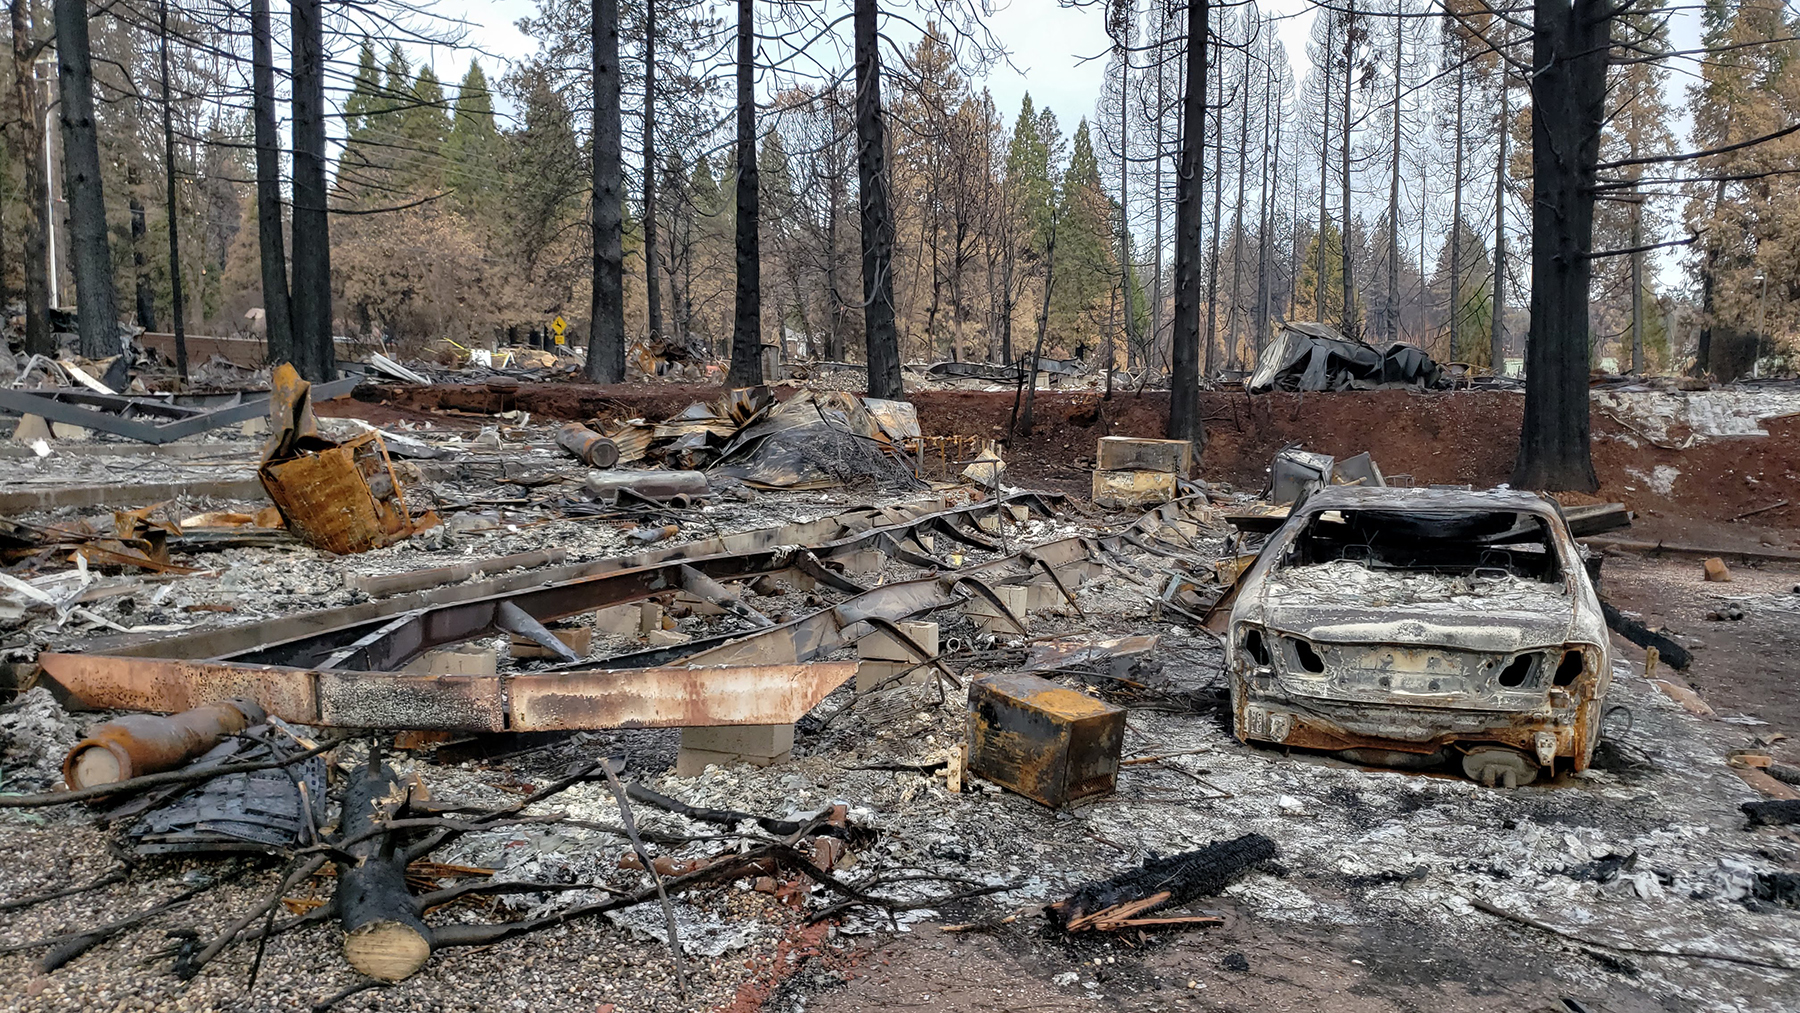 Damage from the Camp Fire, as seen here in Paradise, California, in Dec. 2018, after the fire killed more than 80 people and destroyed most of the Northern California town. Long after they've been extinguished, wildfires can leave behind a toxic mix of chemicals, from melted furniture to incinerated cleaning products to hollowed-out vehicles. (Andrew MacCalla/Direct Relief)